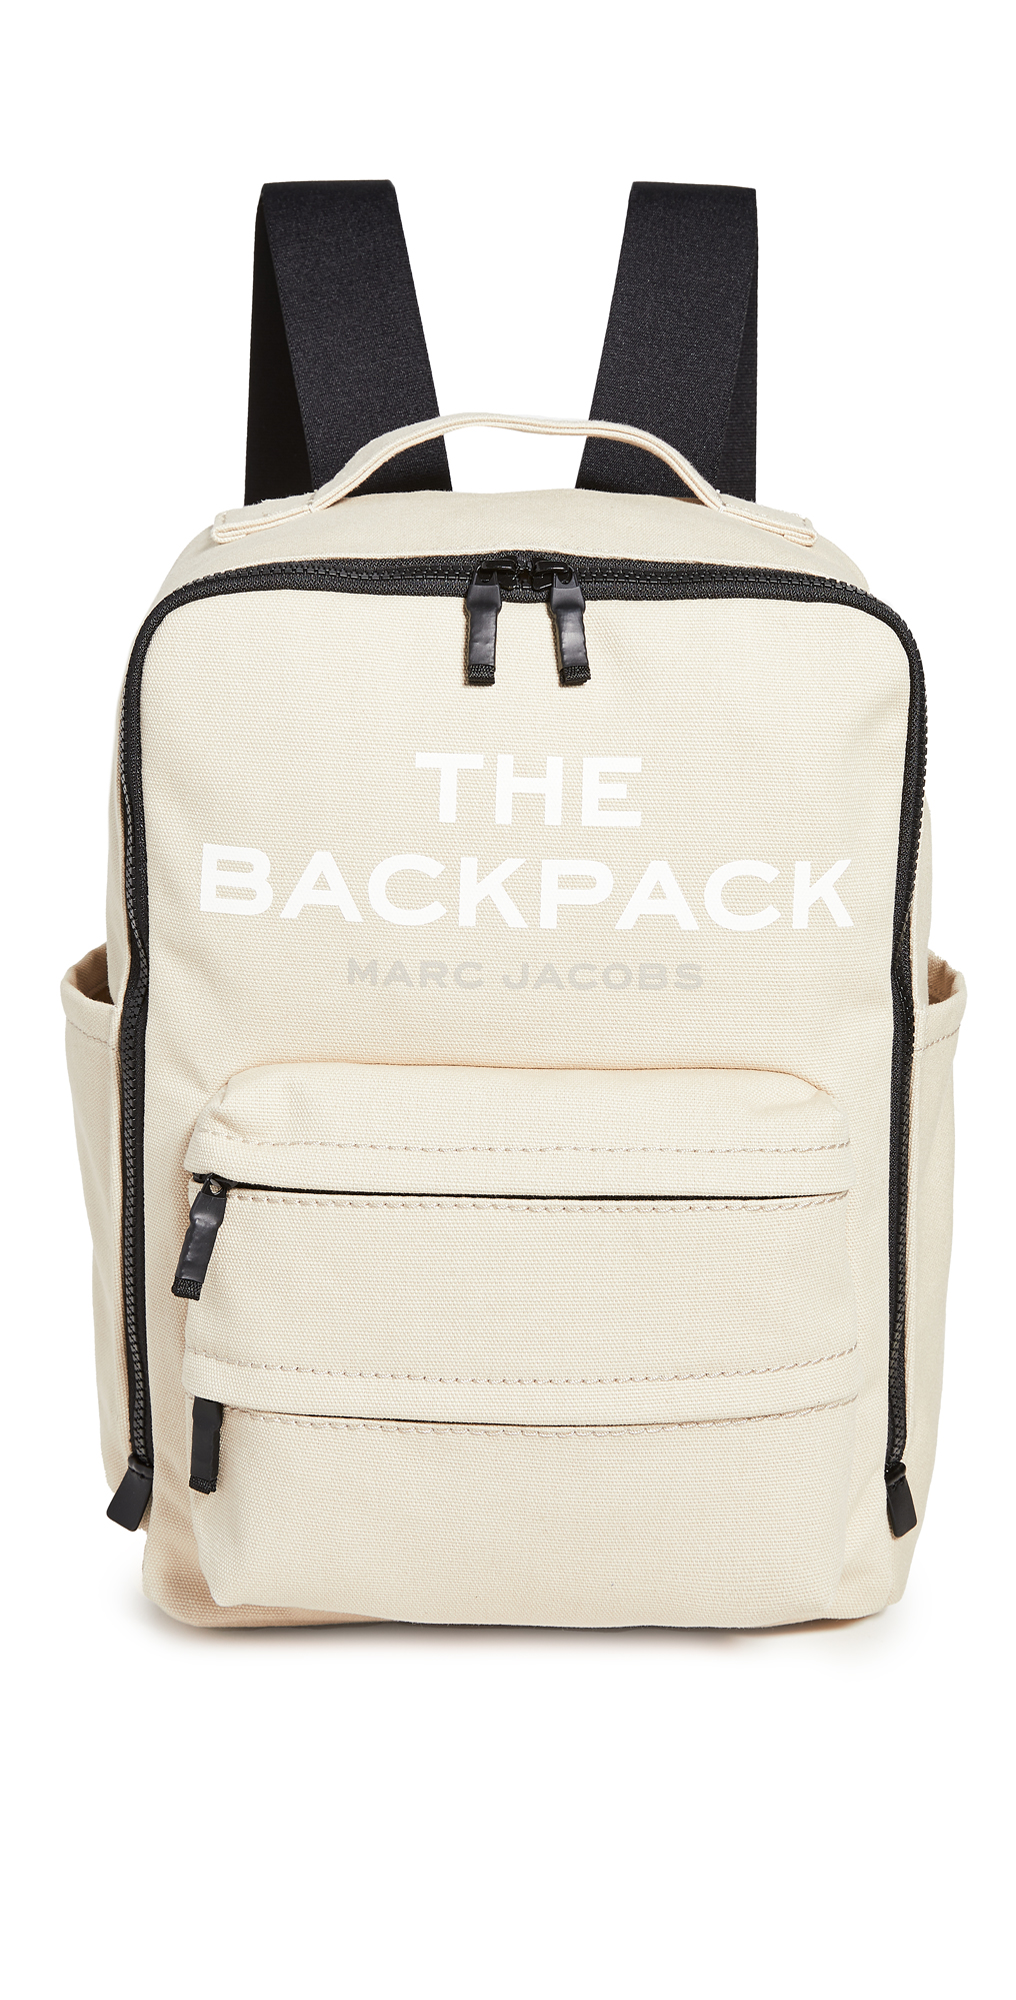 The Marc Jacobs The Backpack